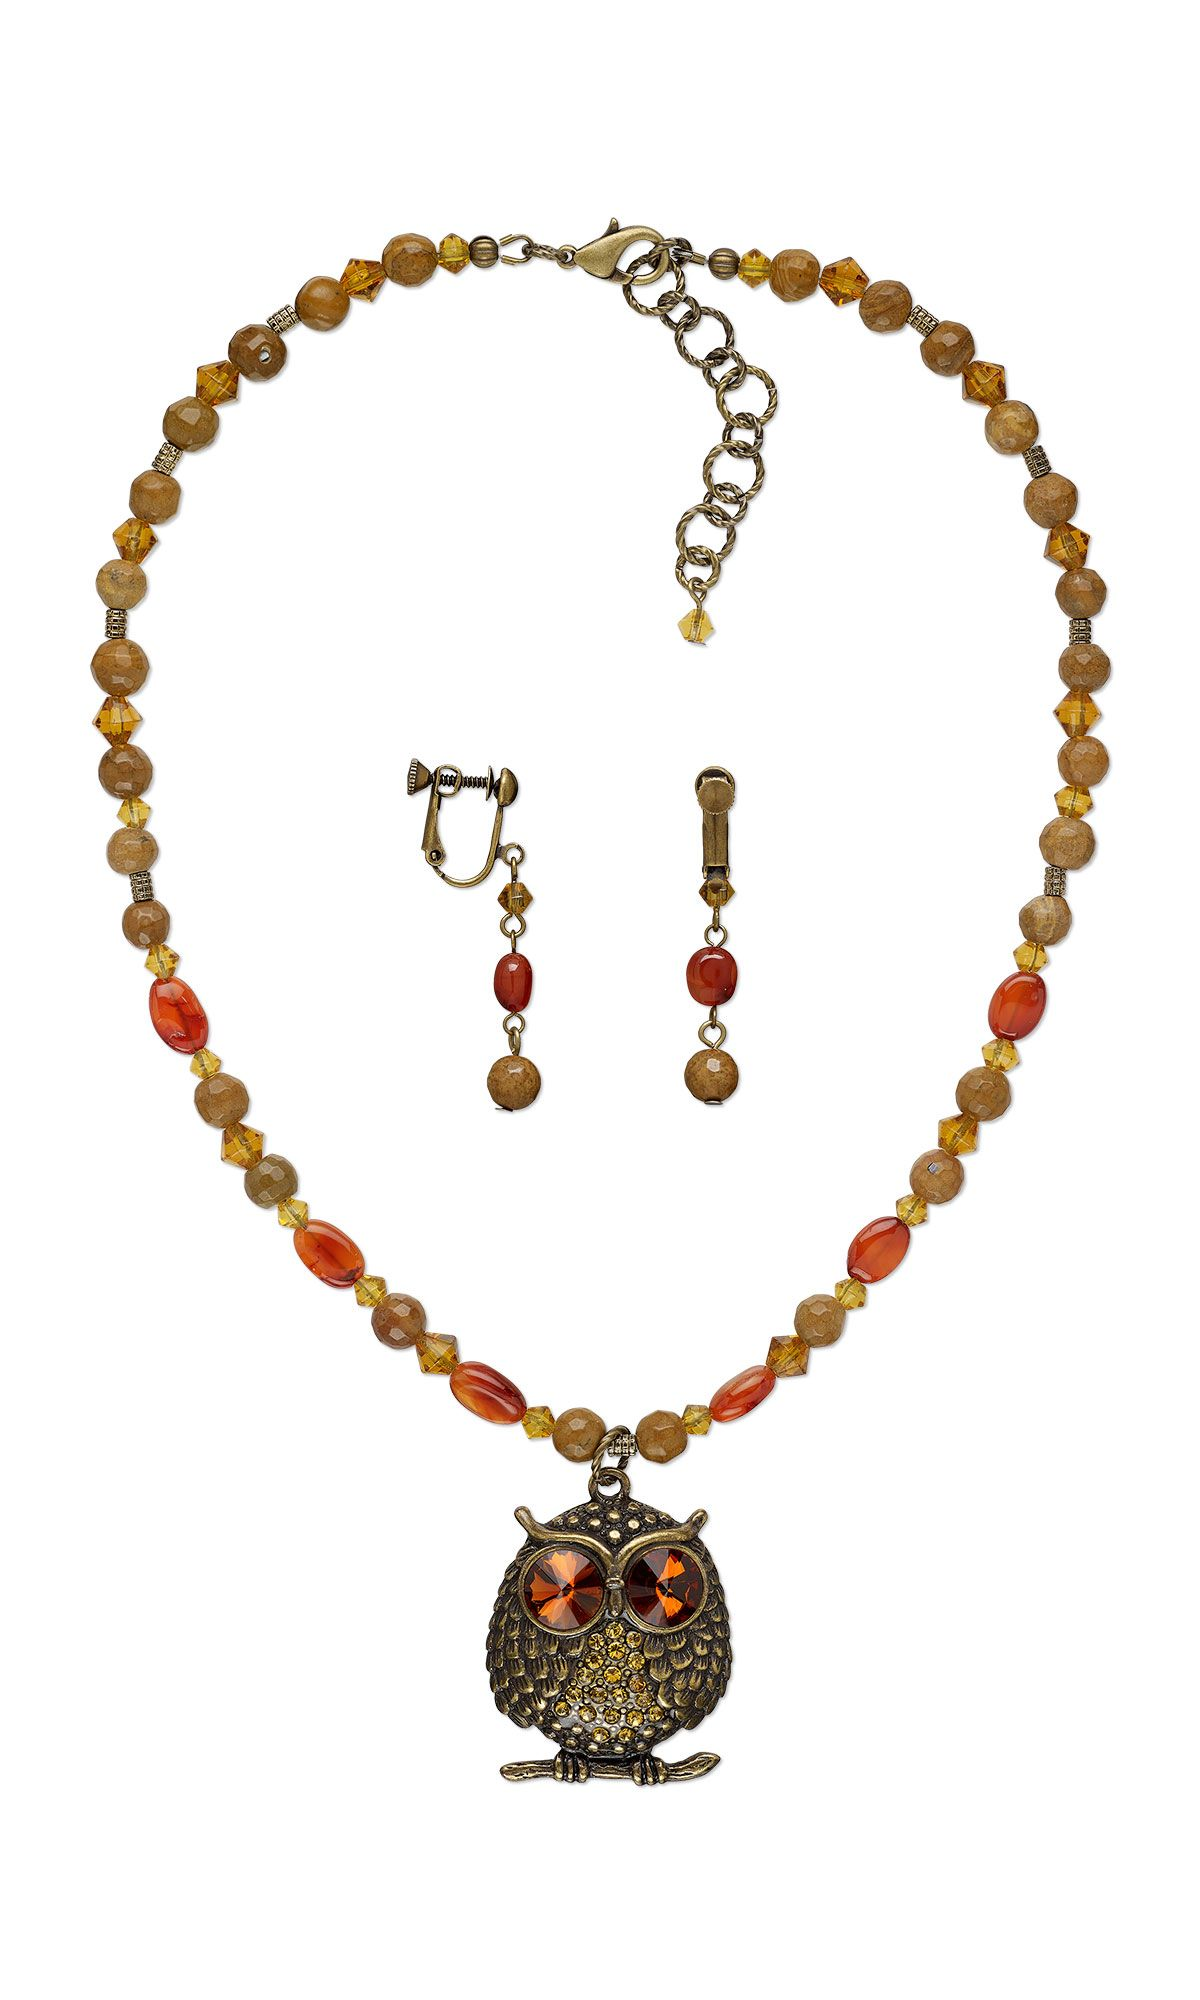 Jewelry design singlestrand necklace and earrings set with